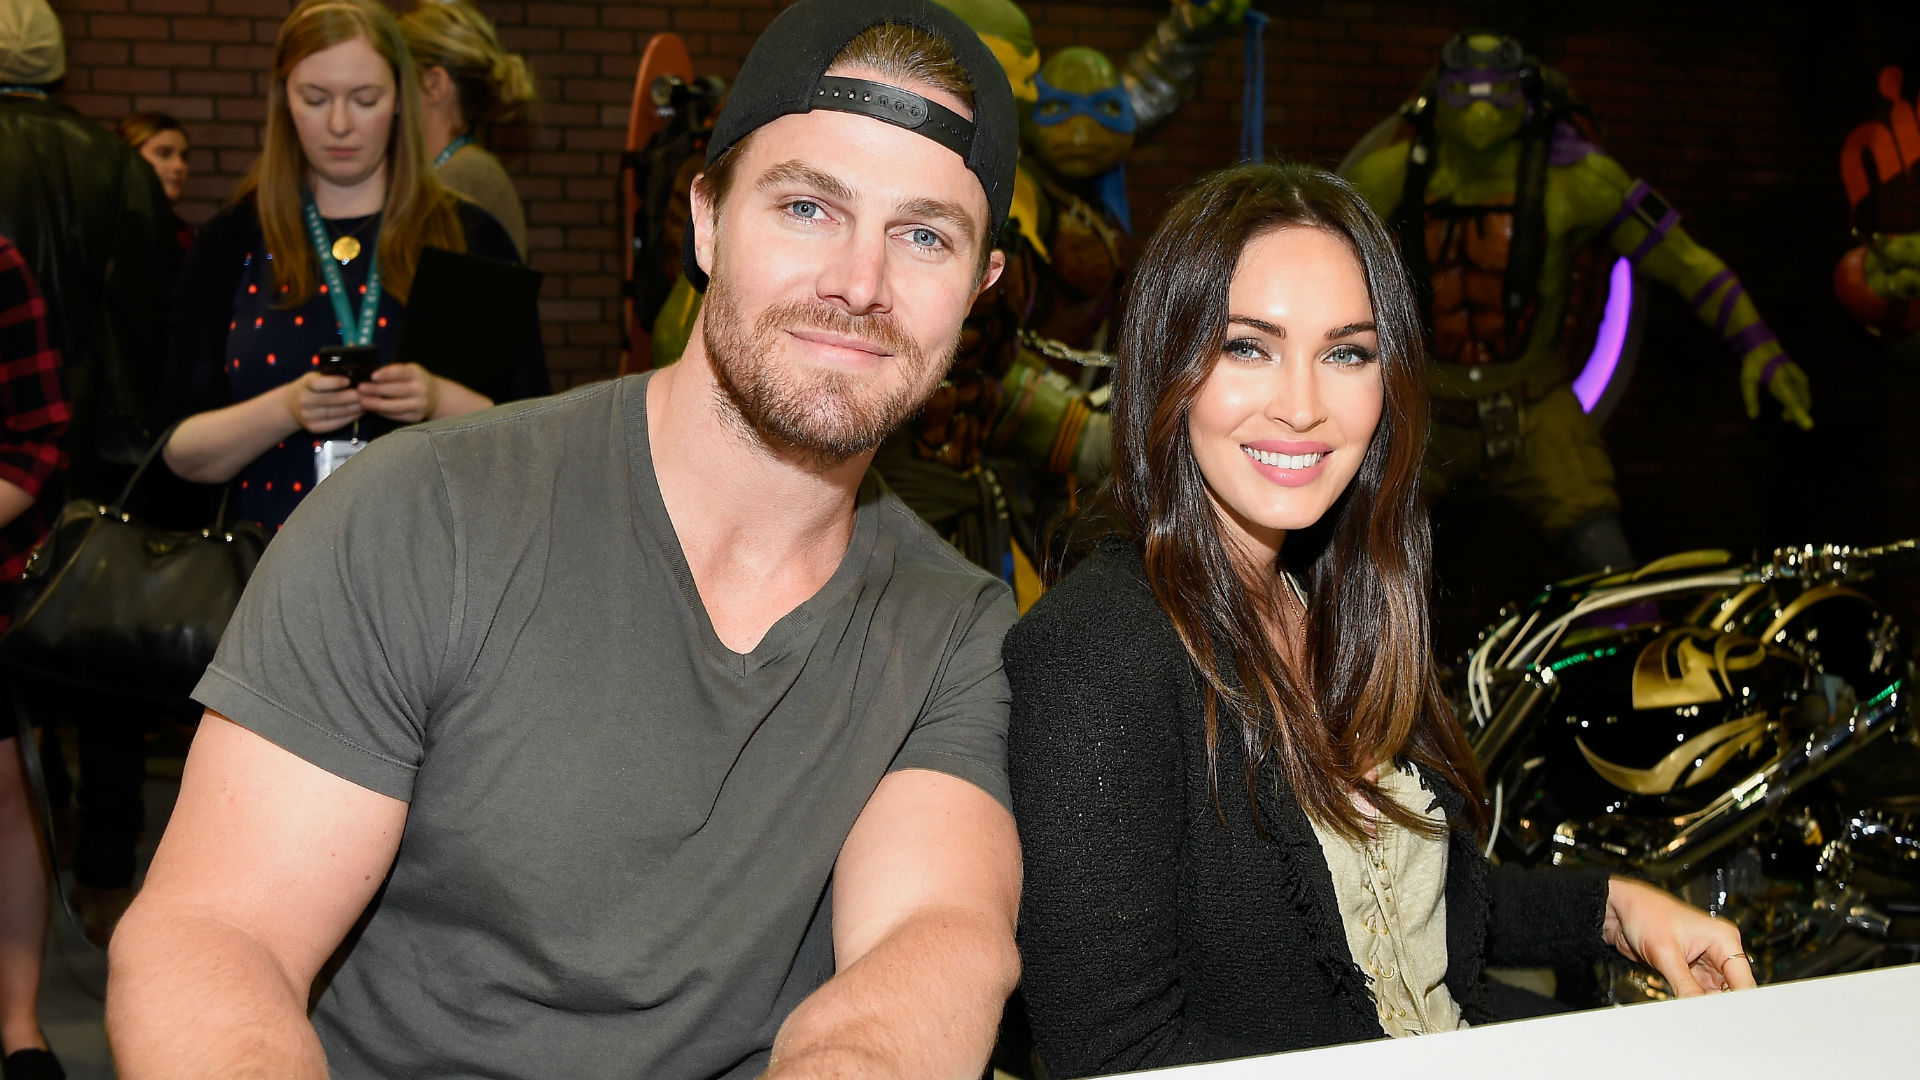 Stephen Amell and Megan Fox